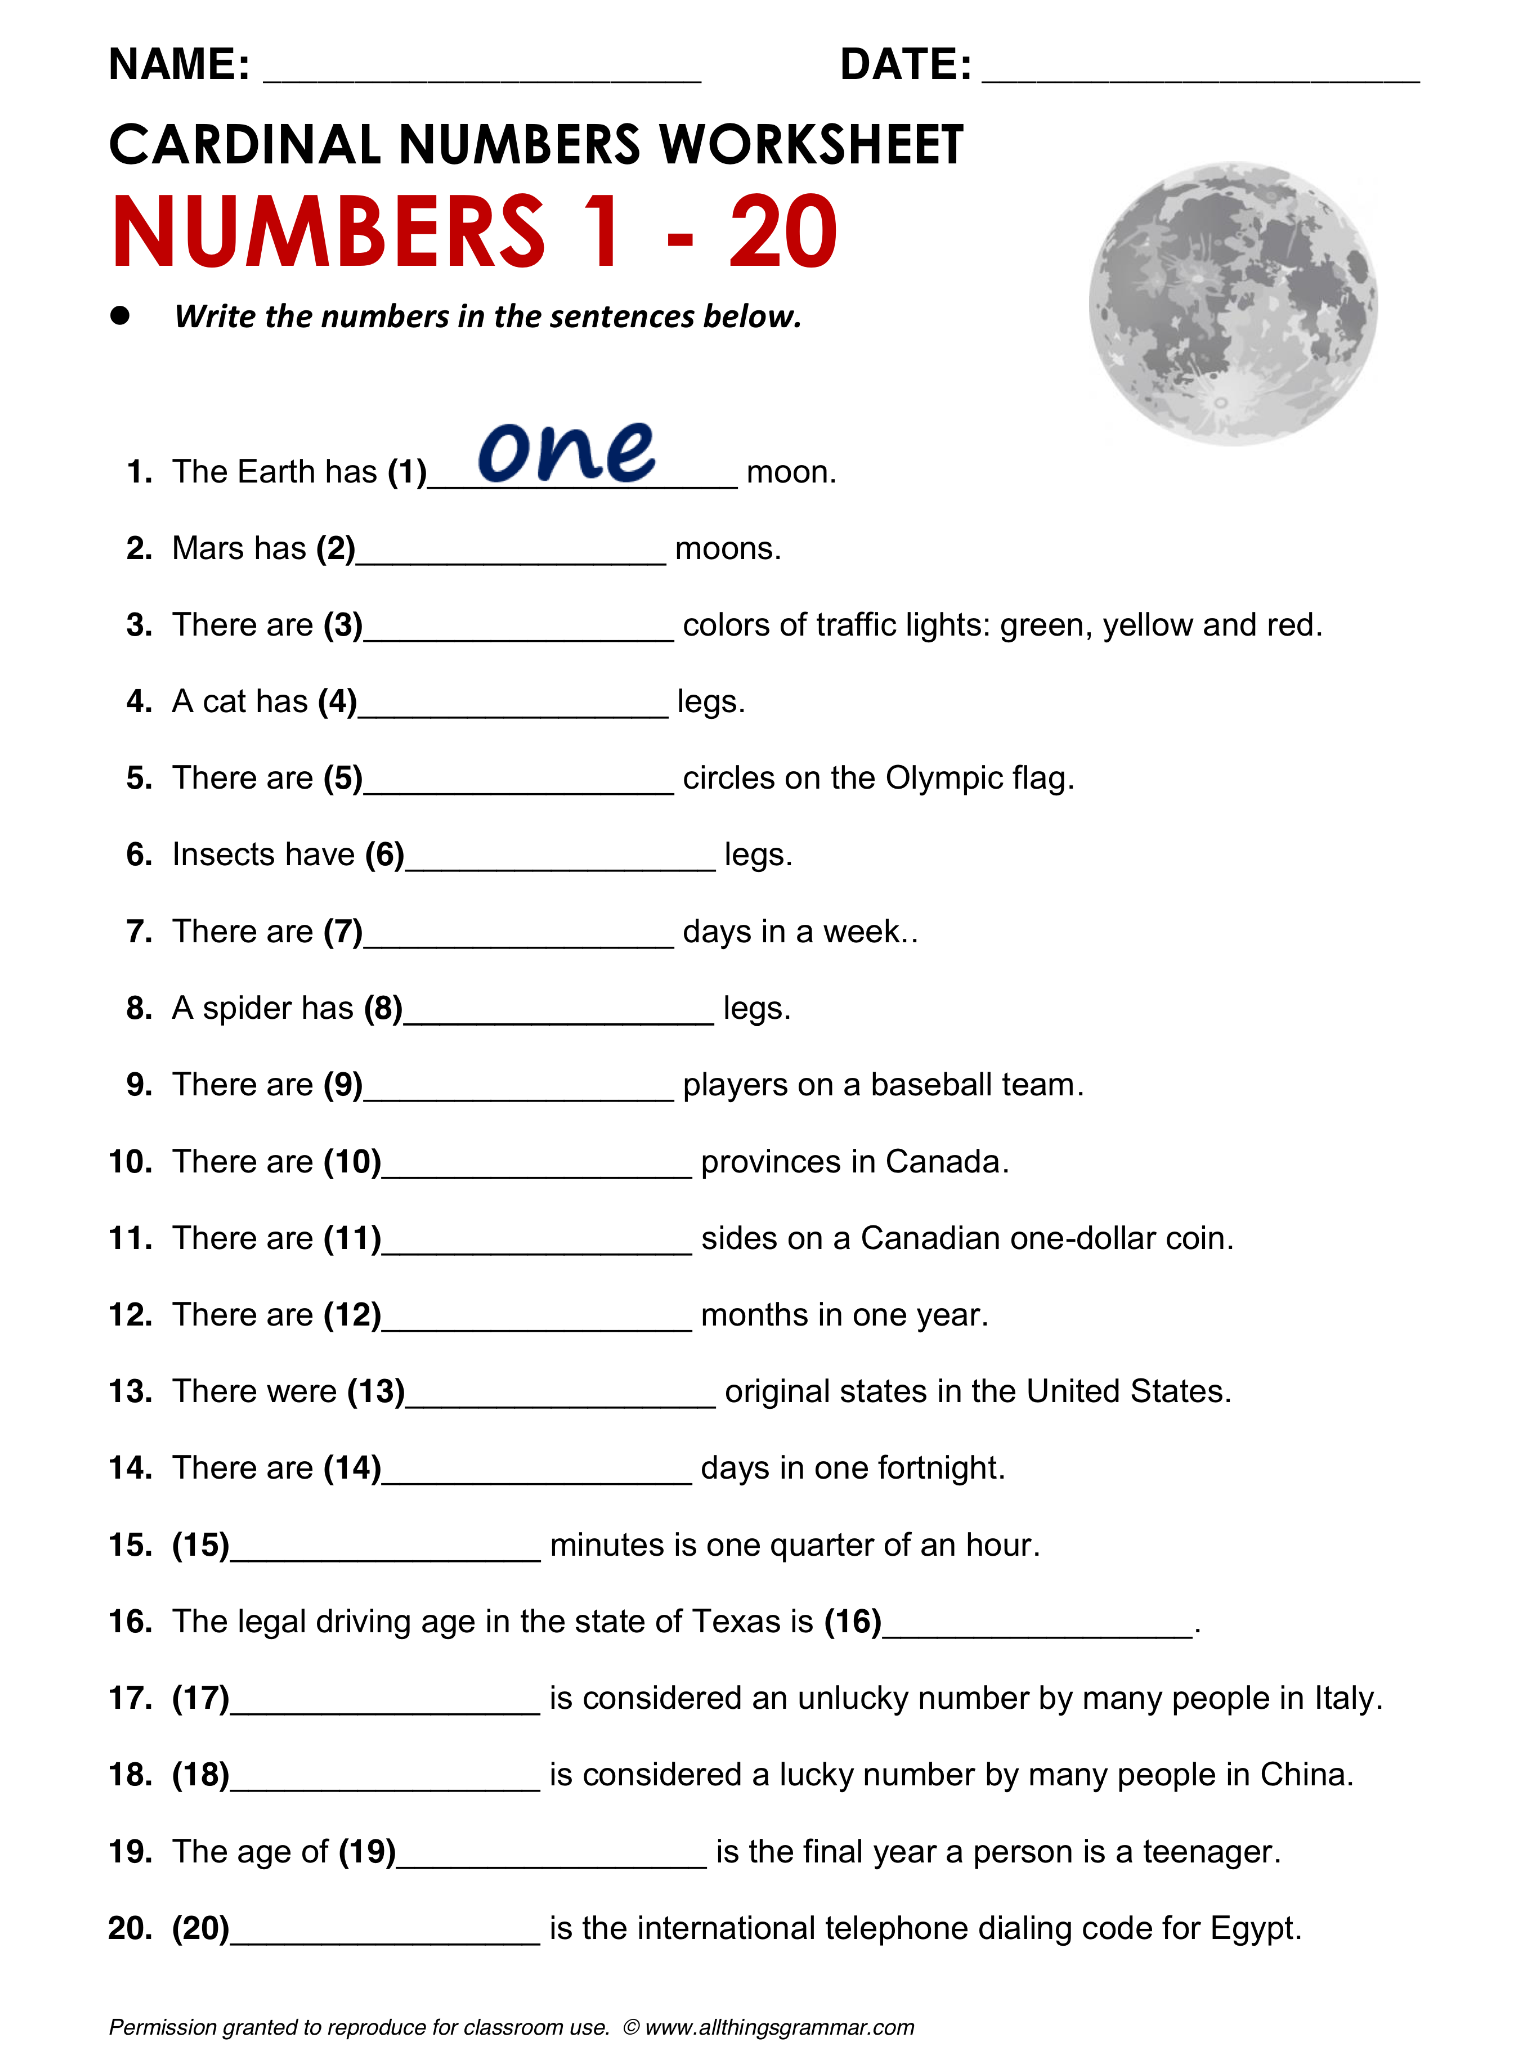 worksheet English Grammar For Adults Worksheets english grammar cardinal numbers httpwww allthingsgrammar com comnumbers